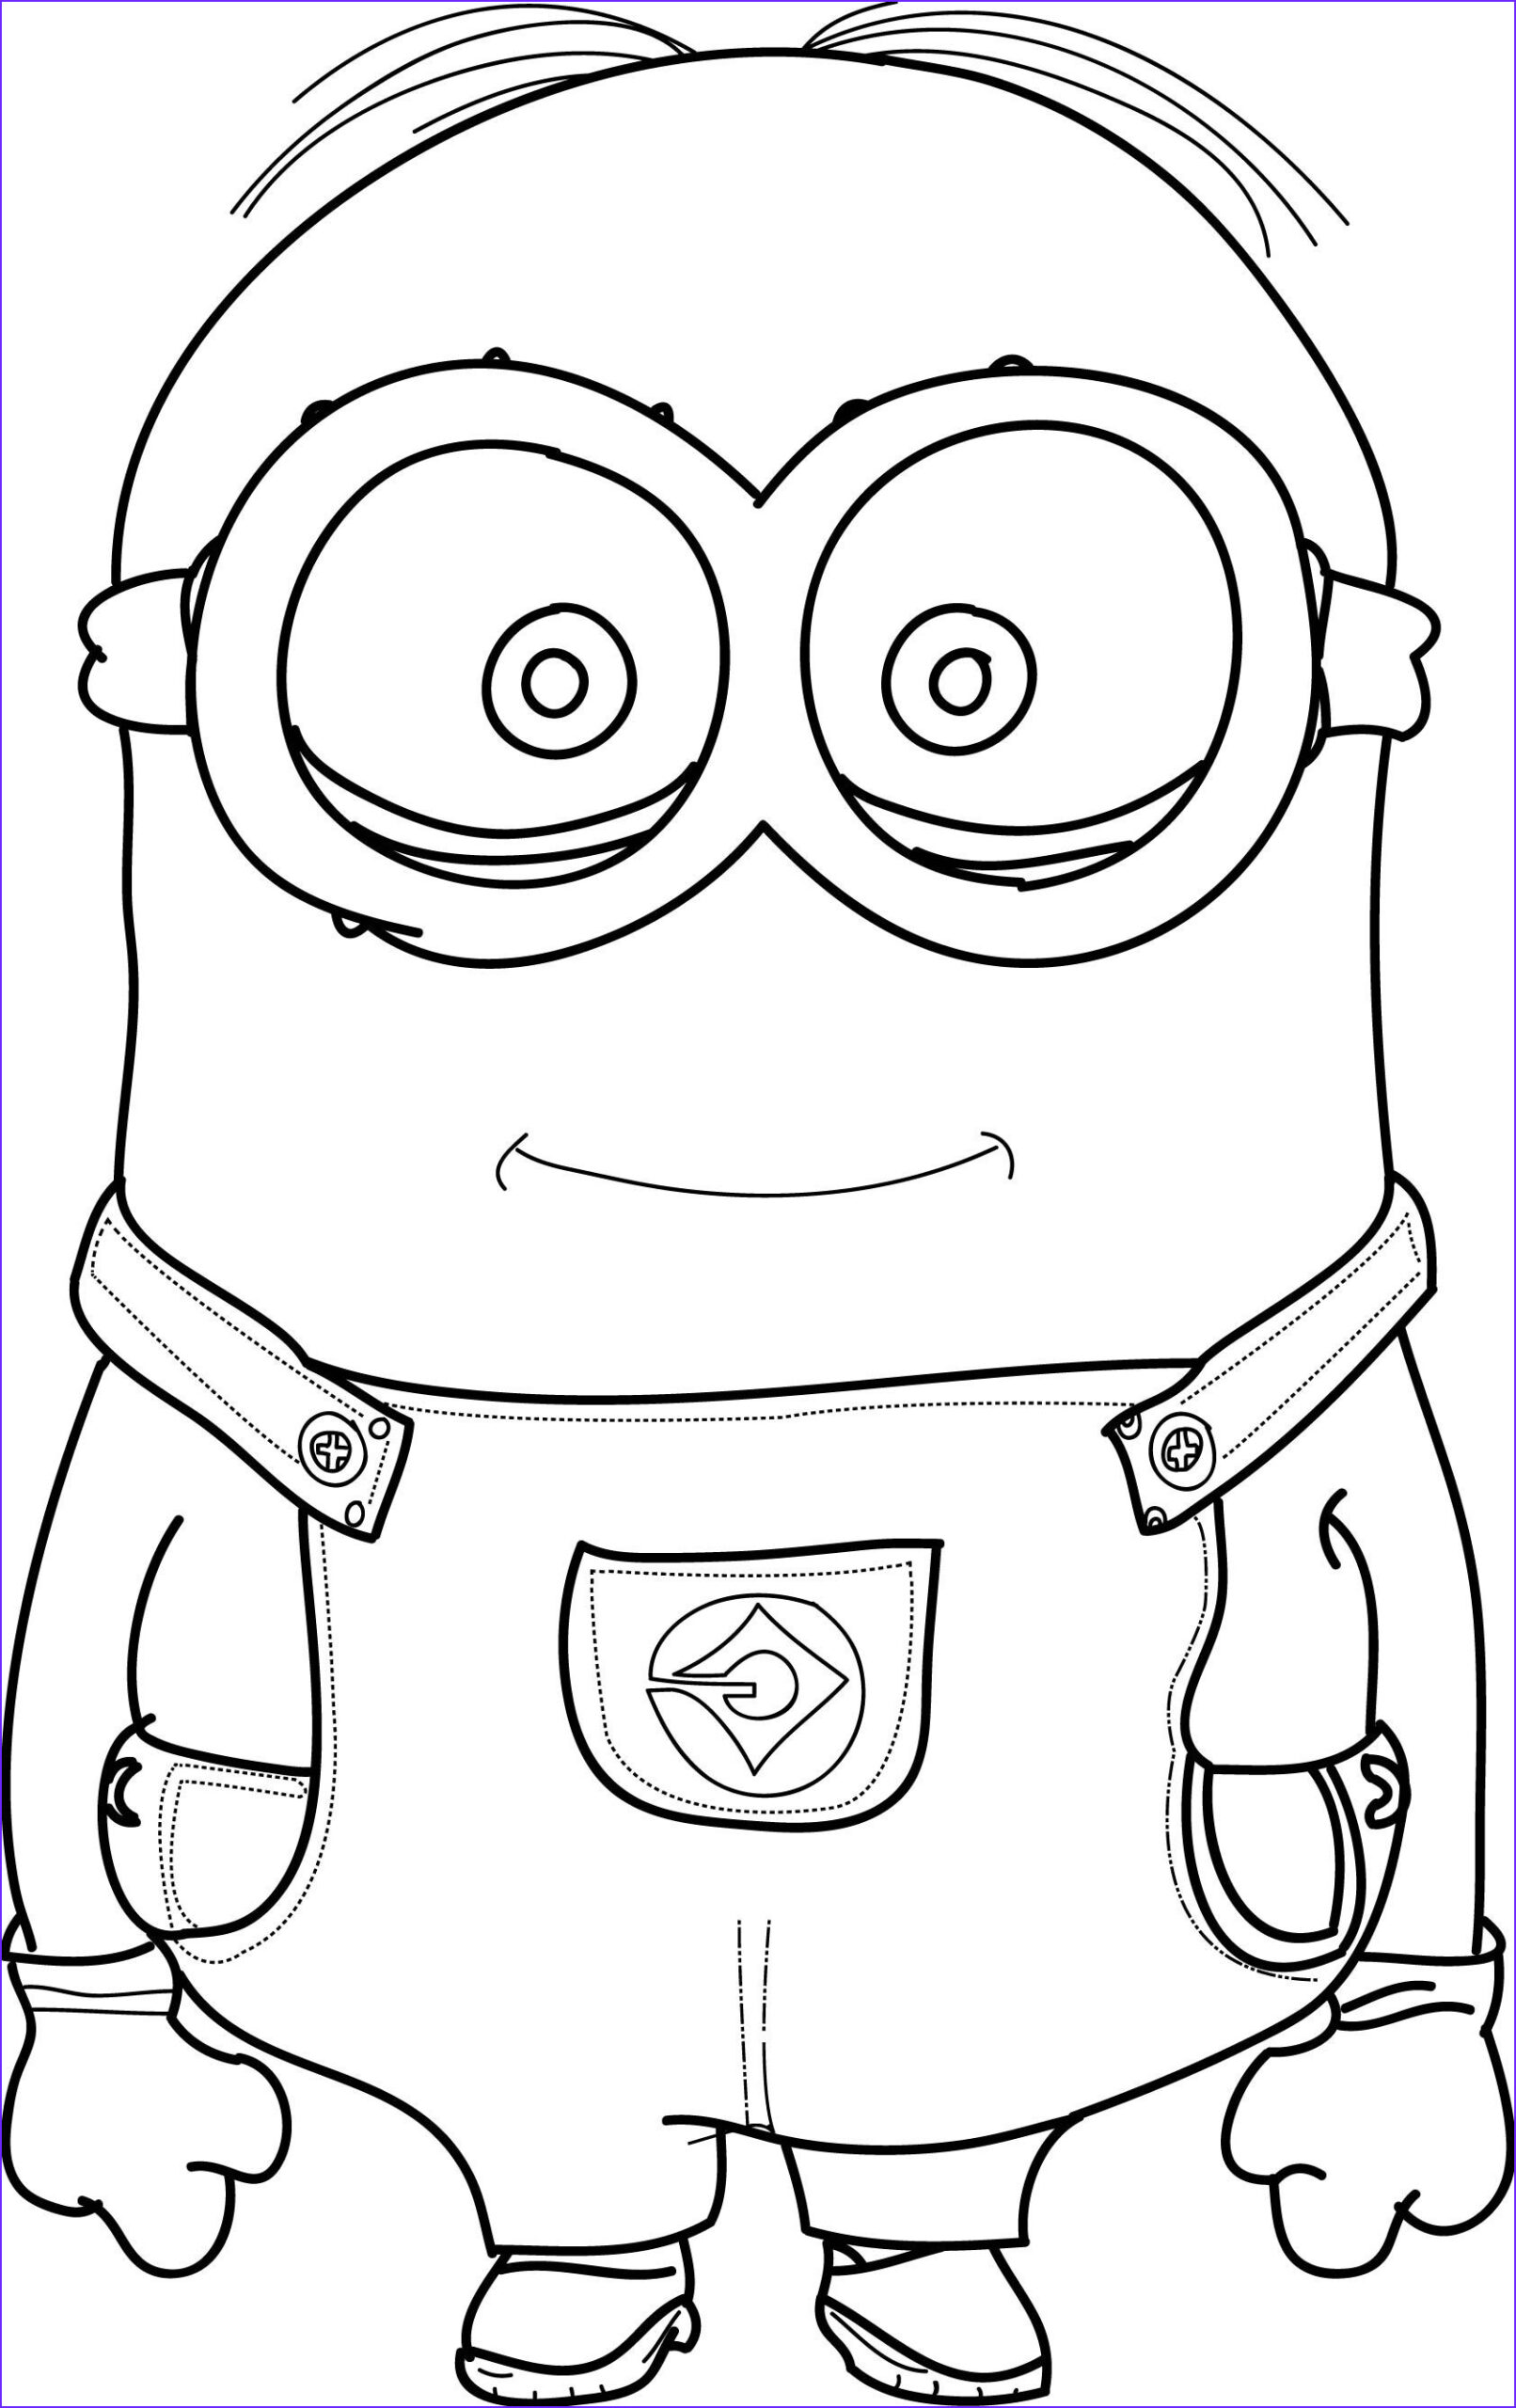 Minion Coloring Sheet Elegant Photos Cool Minions Coloring Pages Wecoloringpage